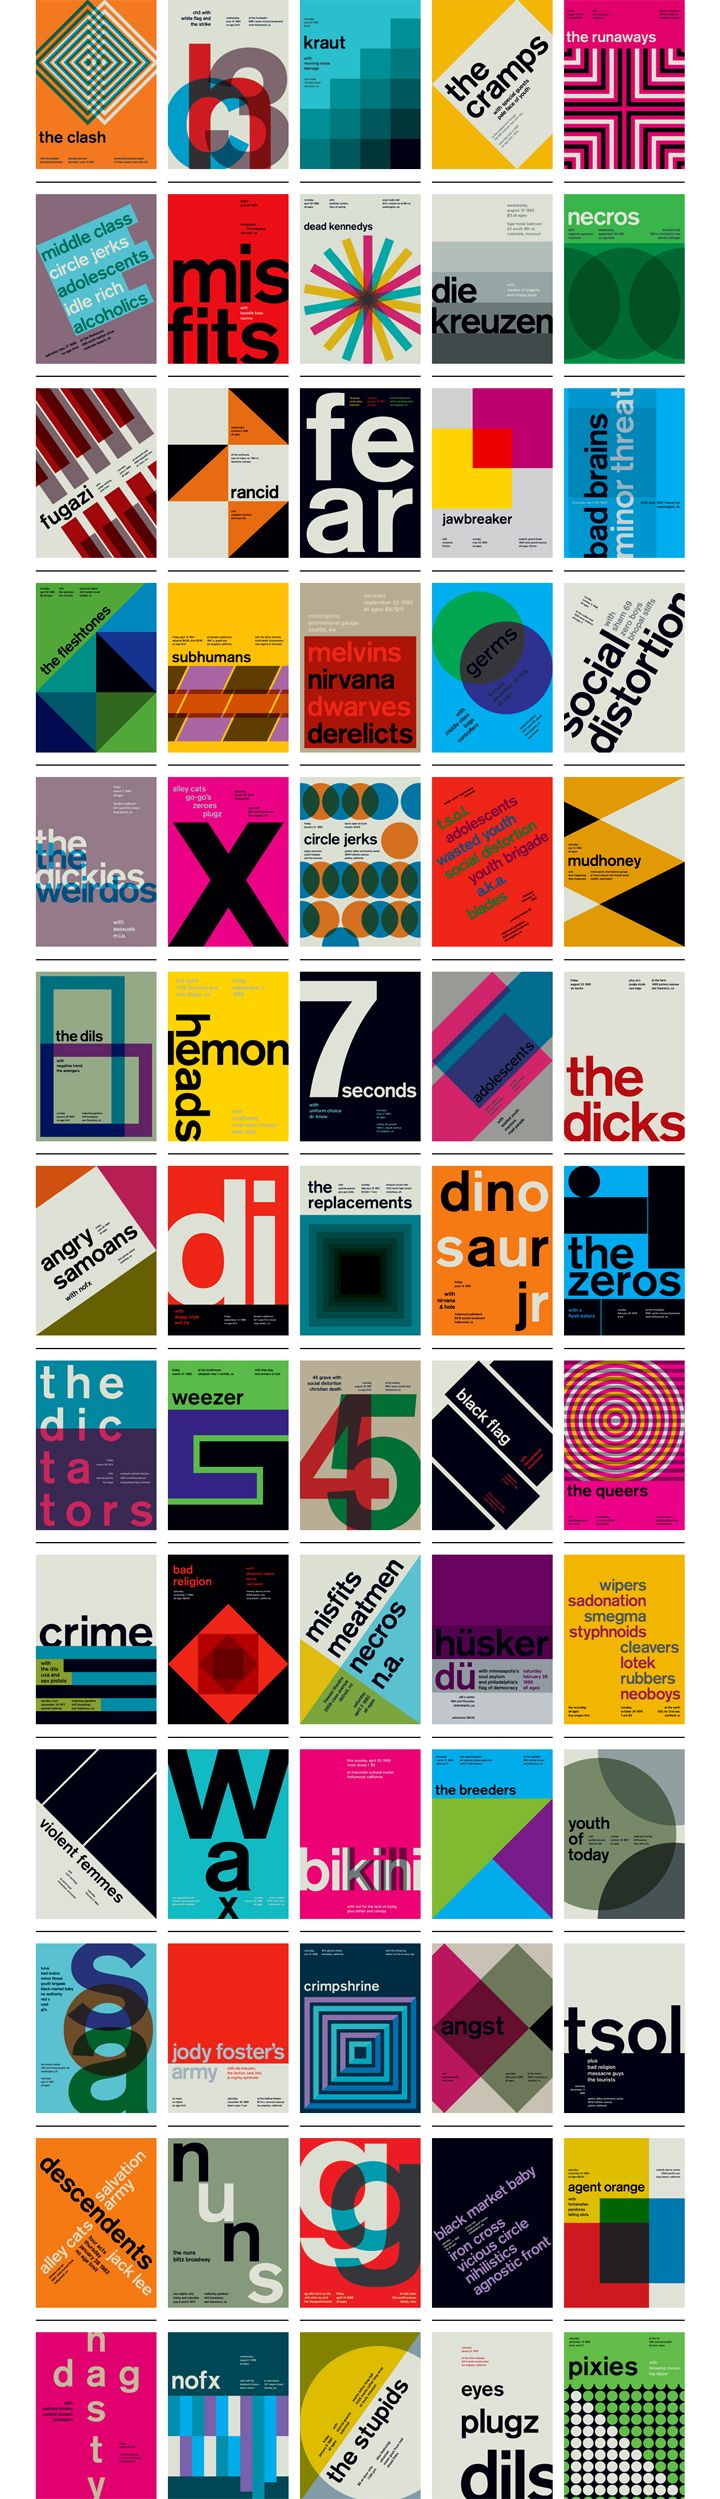 swissted is an ongoing project by graphic designer mike joyce, owner of…